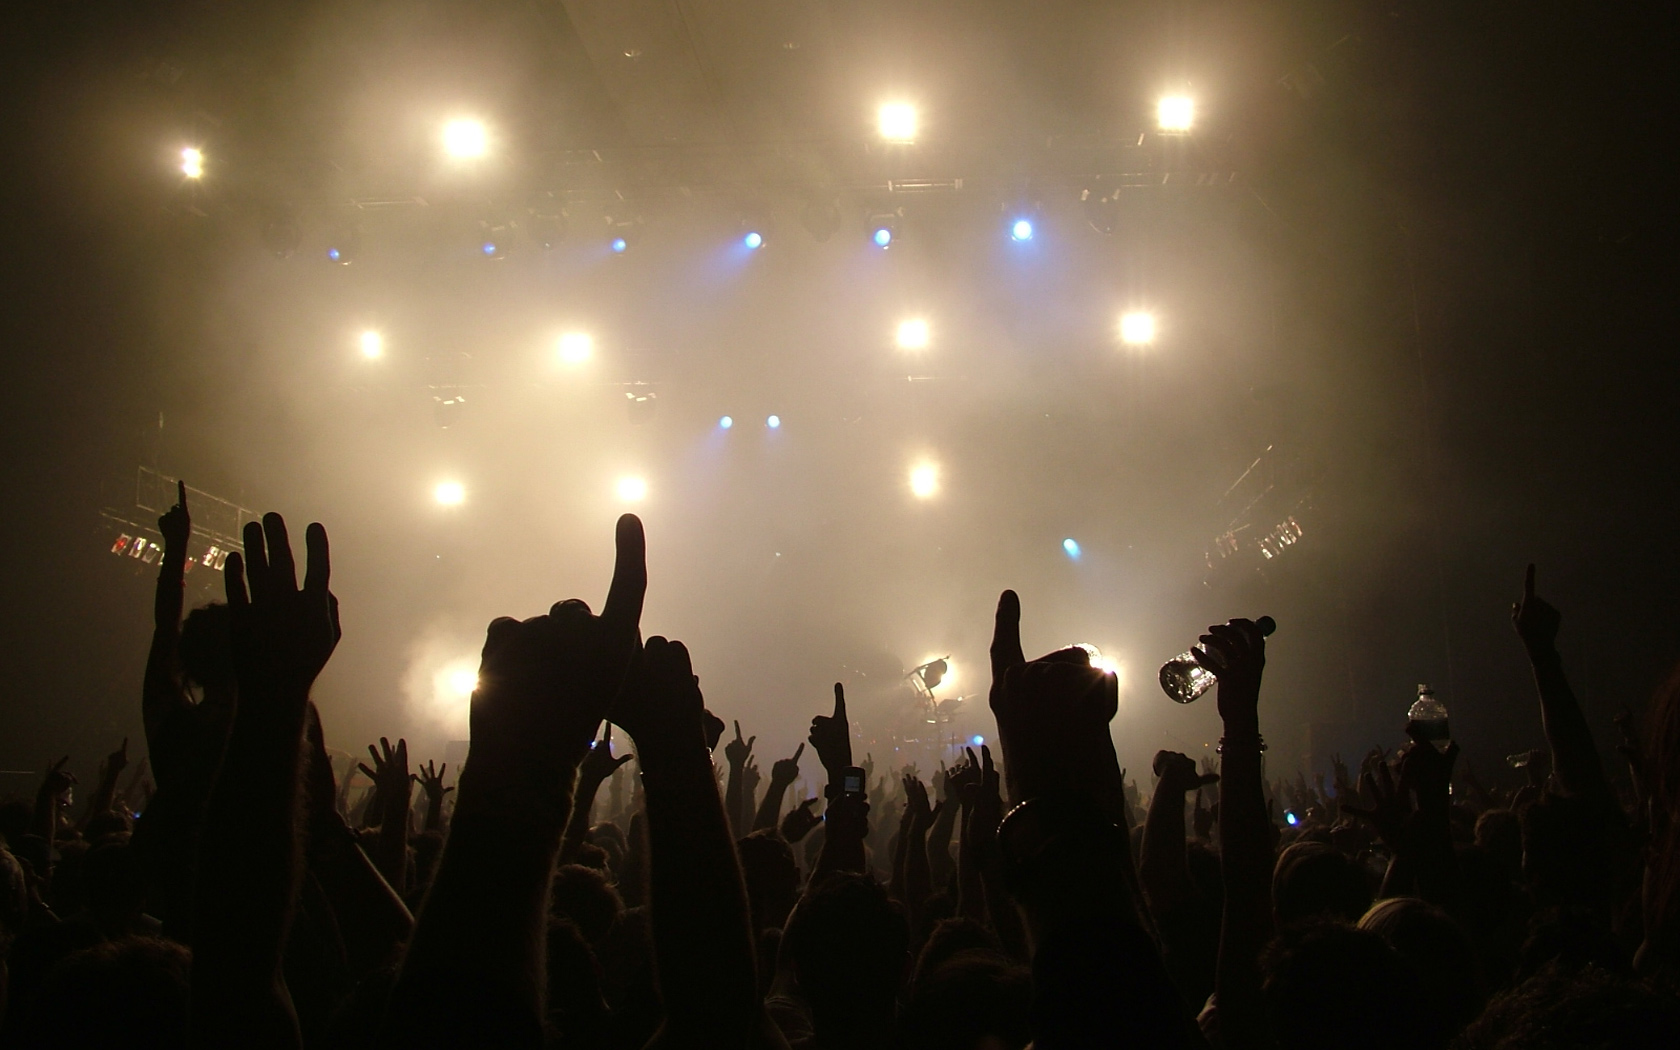 62 concert hd wallpapers backgrounds wallpaper abyss - Concert crowd wallpaper ...